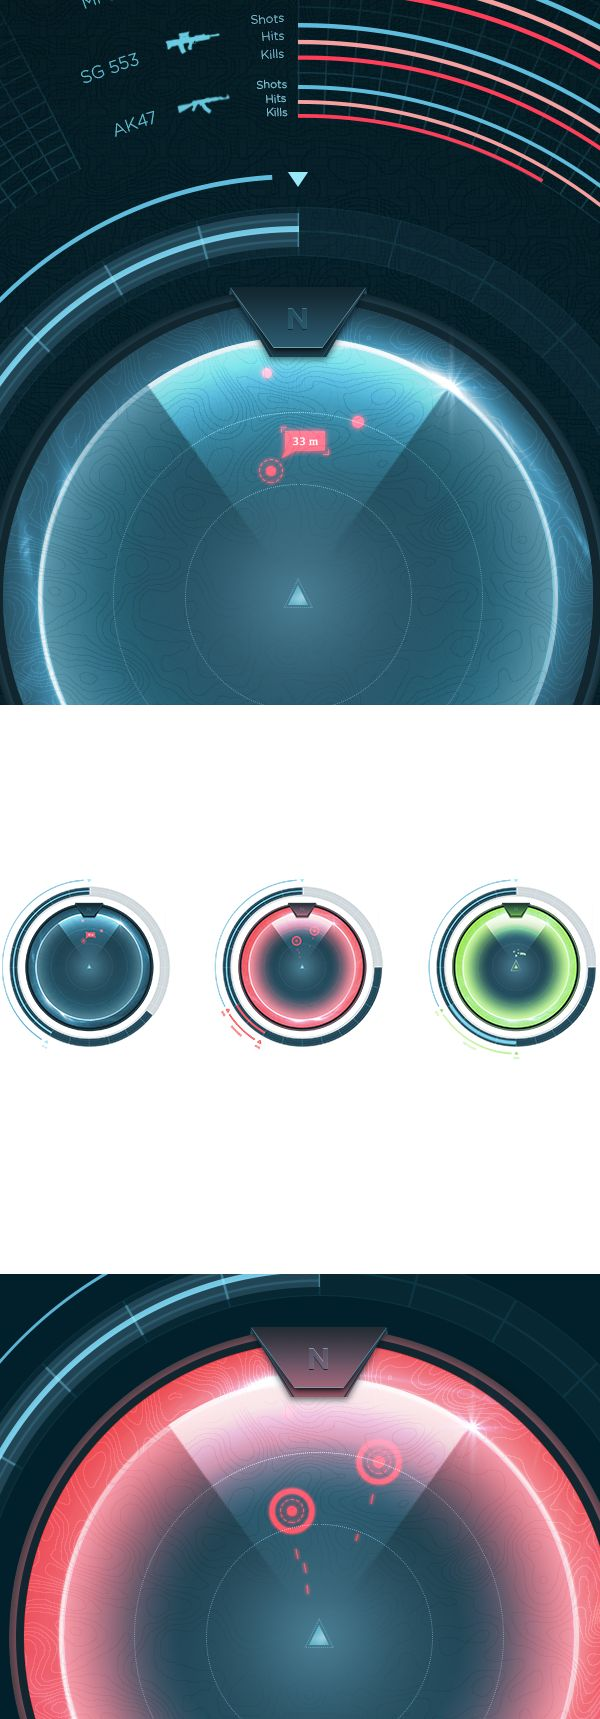 Game Interface 1 by Ammar Z., via Behance